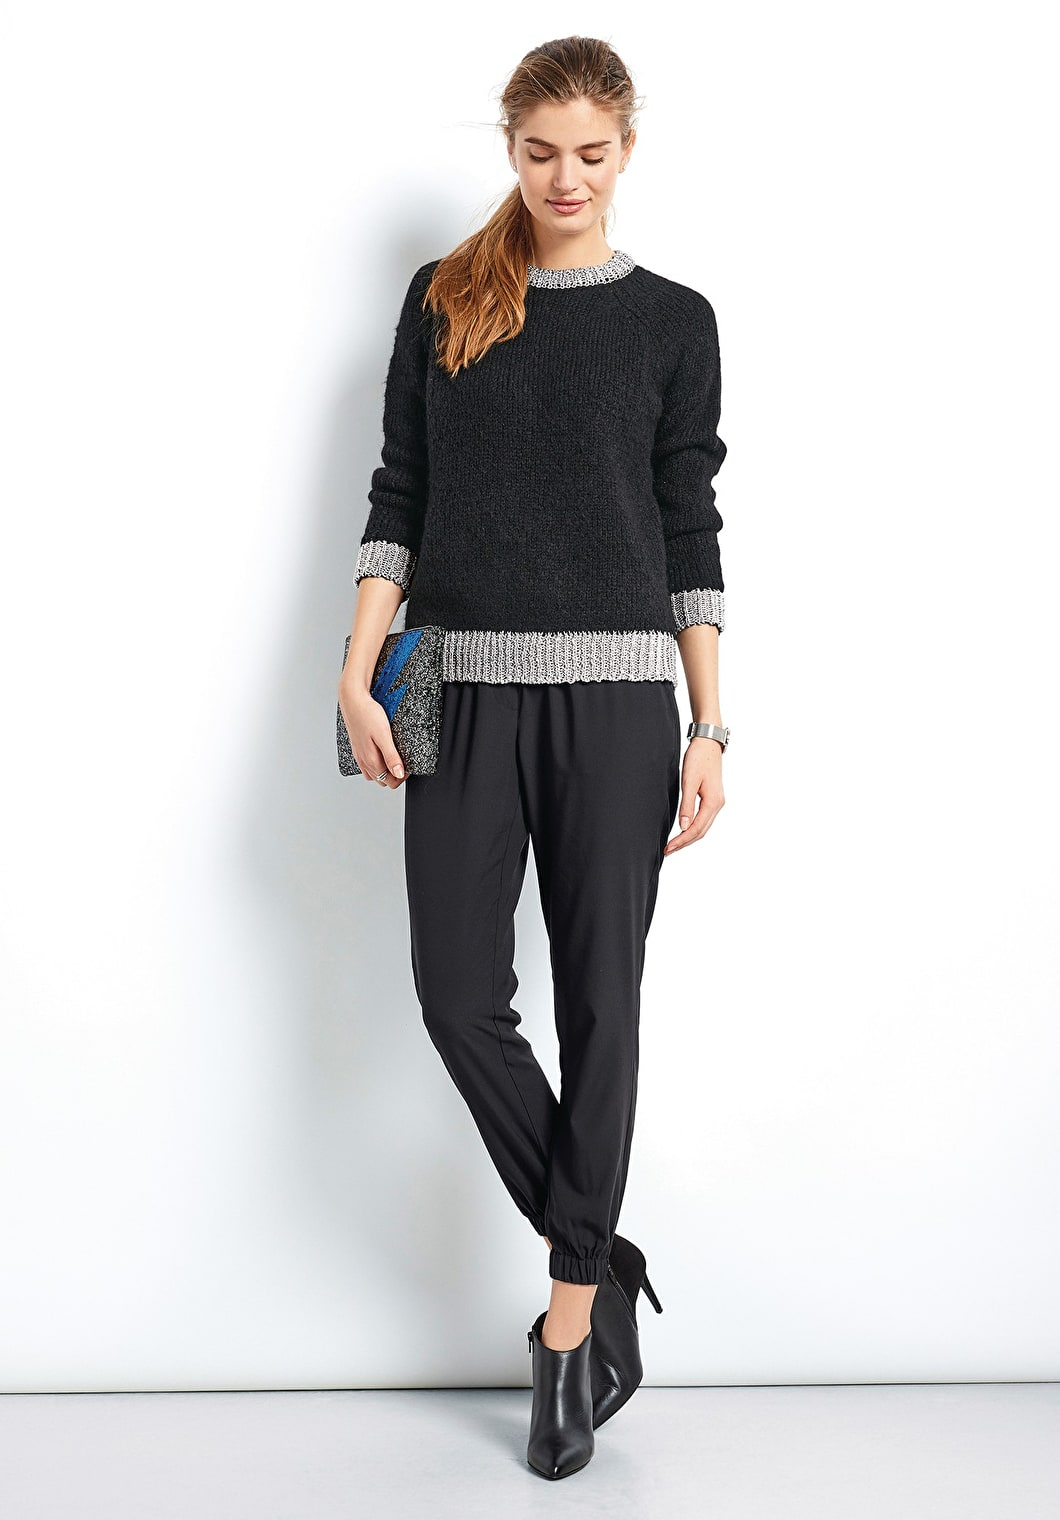 Lurex Metallic Knit | hush